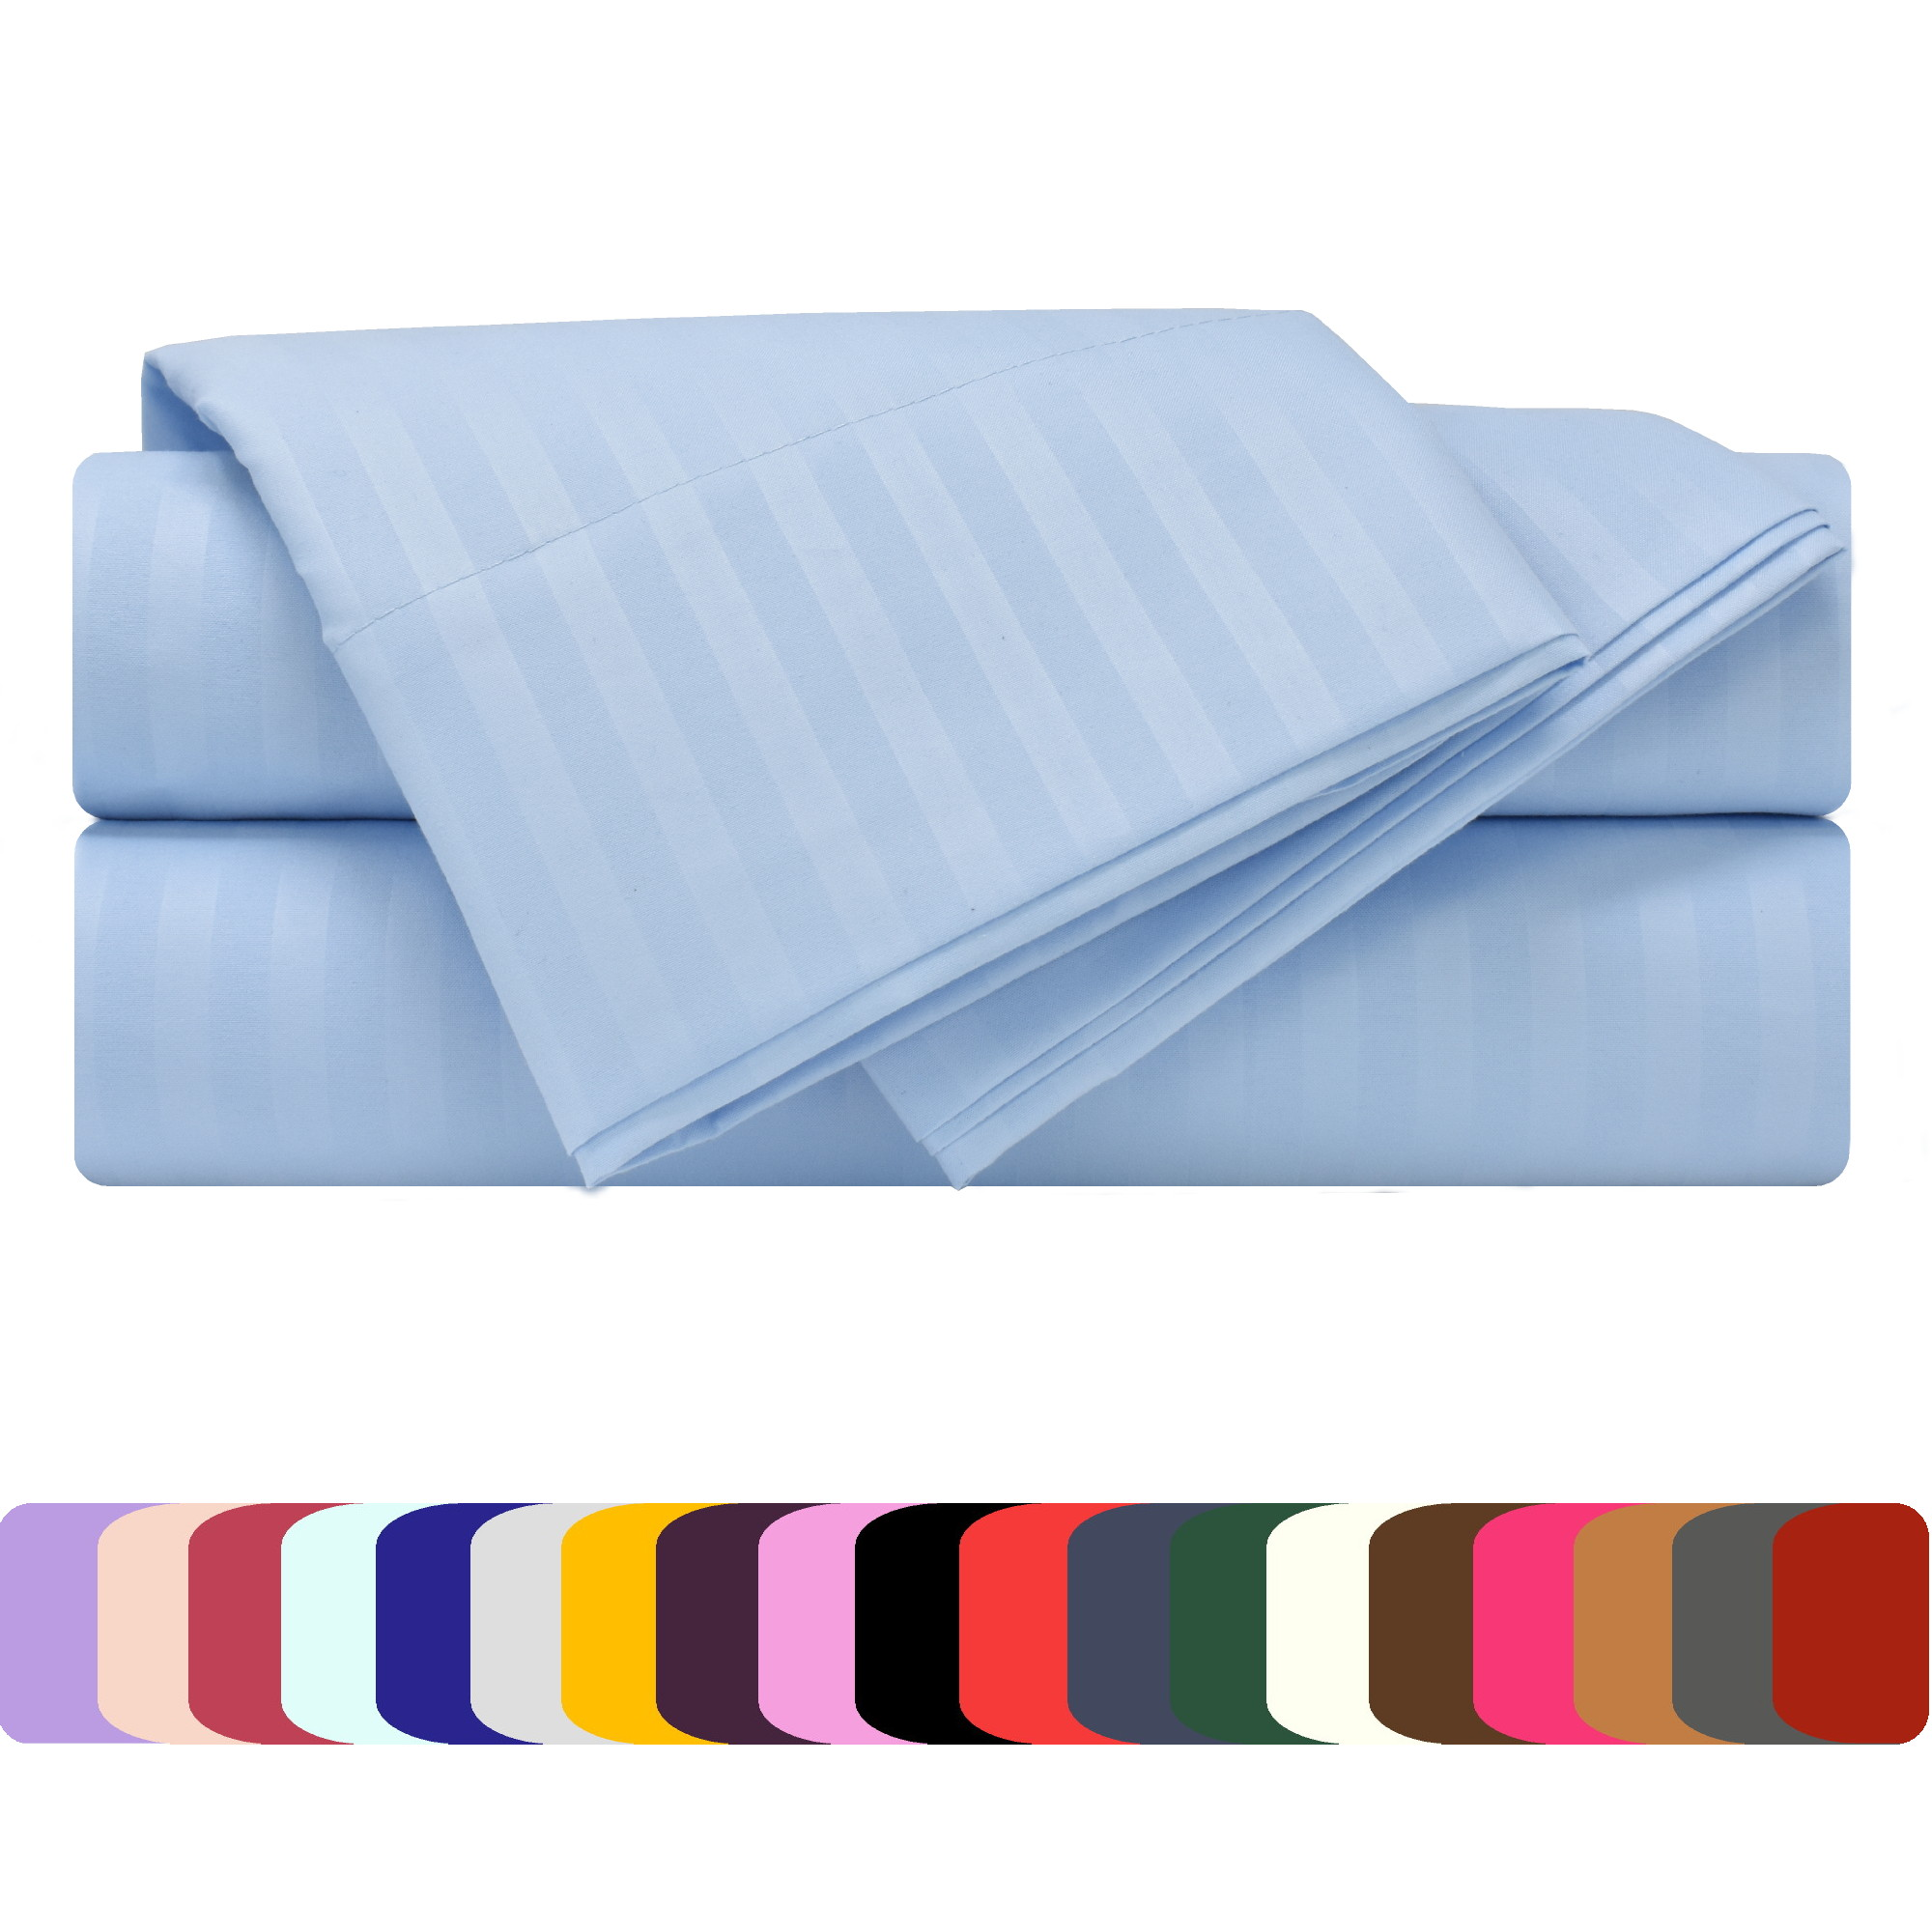 Mezzati Luxury 1800 Prestige Soft and Comfortable Collection Bed Sheets Set Queen Striped Light Blue